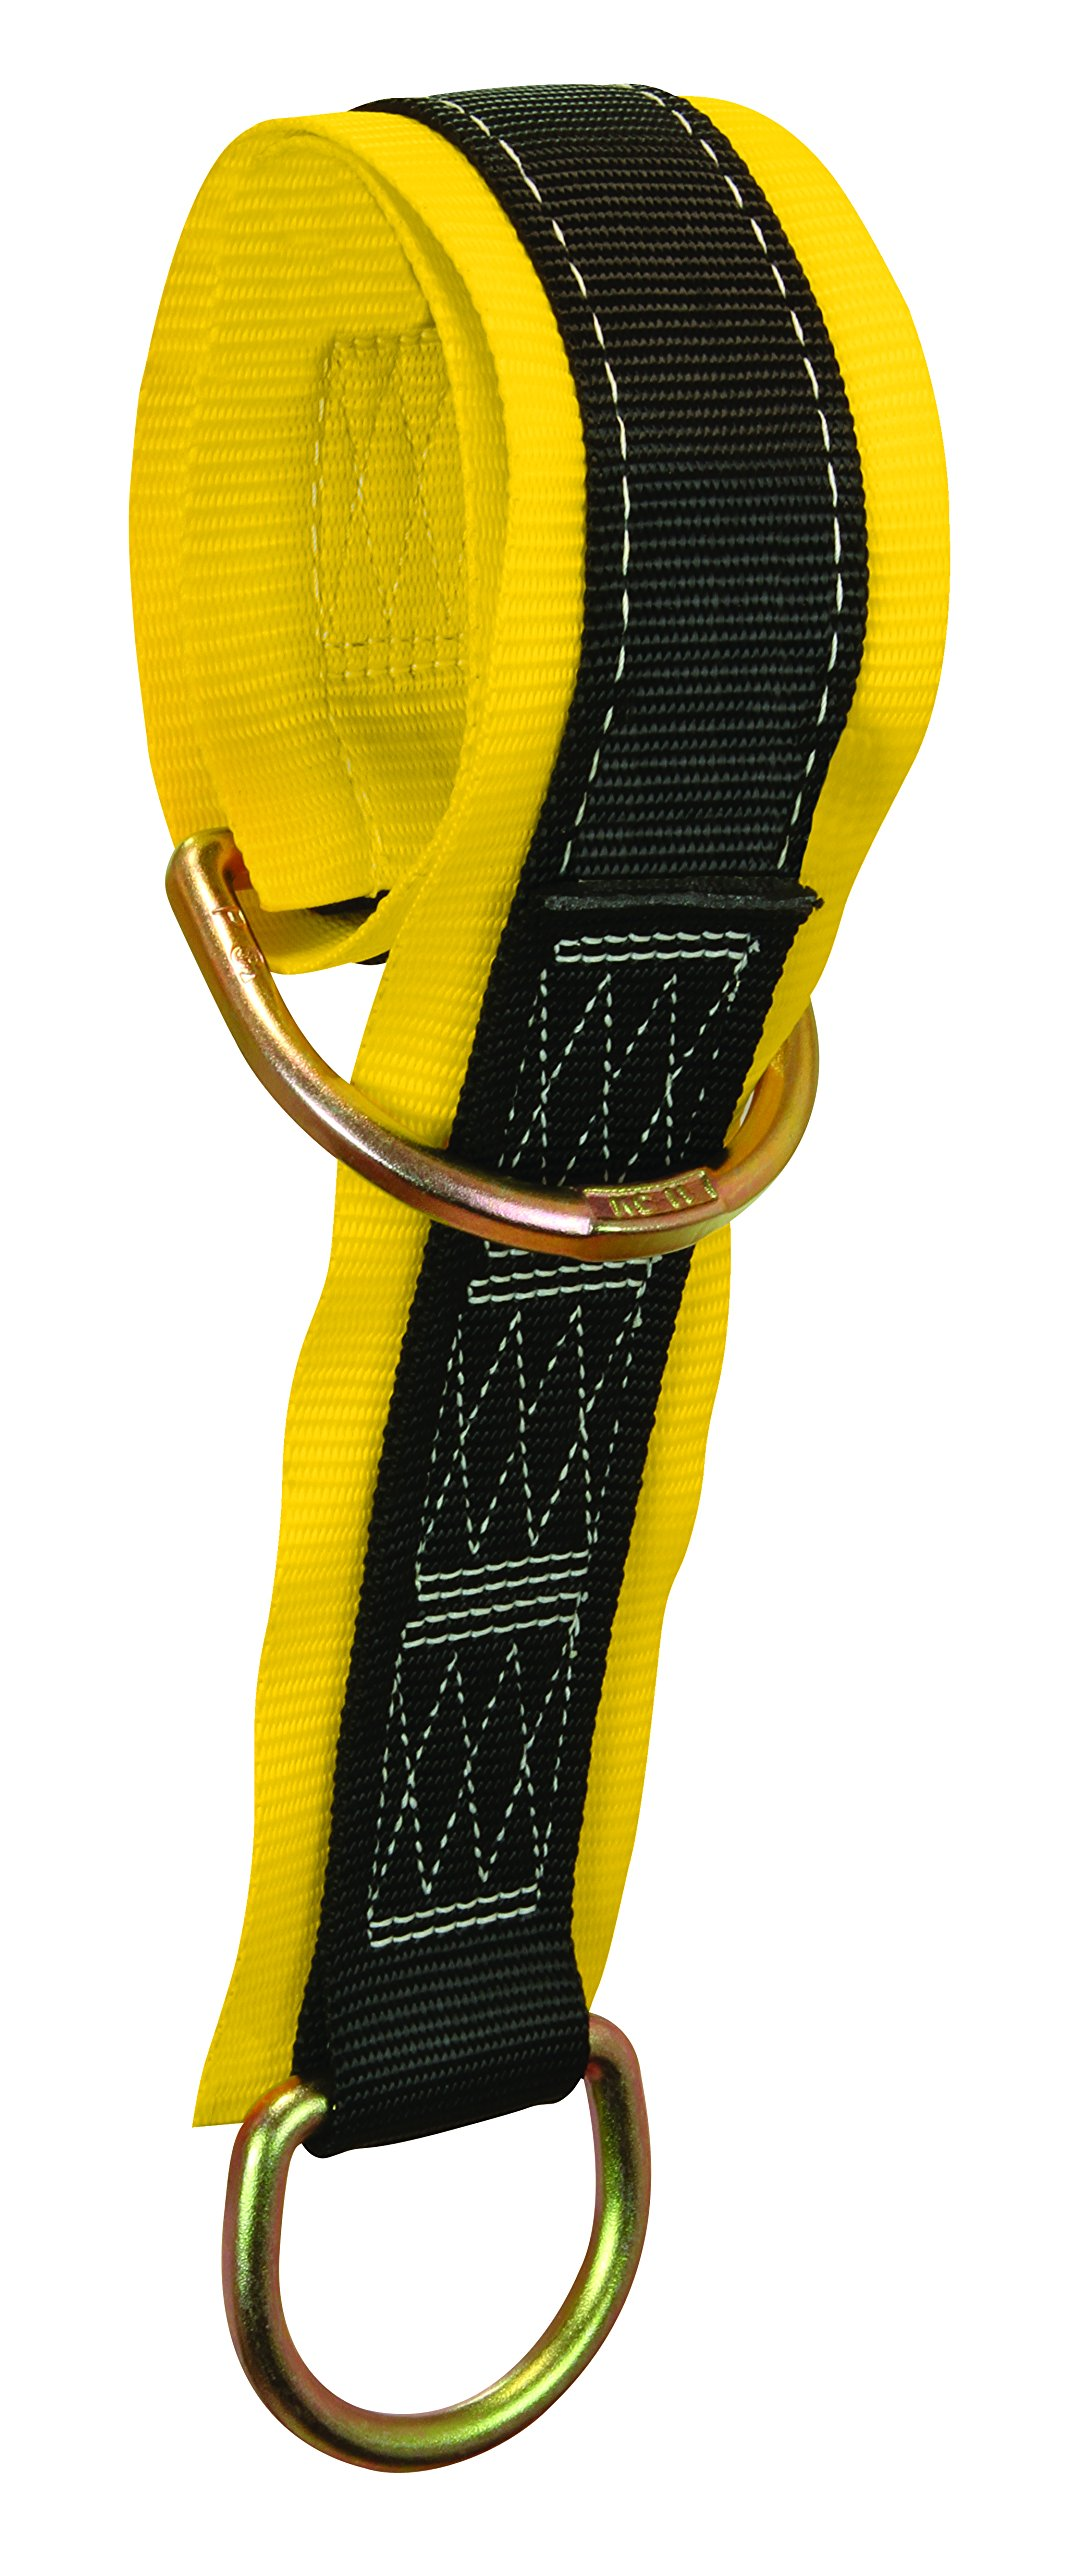 FallTech 7336 Multi-Purpose Pass Through Anchor - Web Pass-Through Anchor Sling with 2 D-Rings and 3'' Wear Pad, 3', Yellow/Black